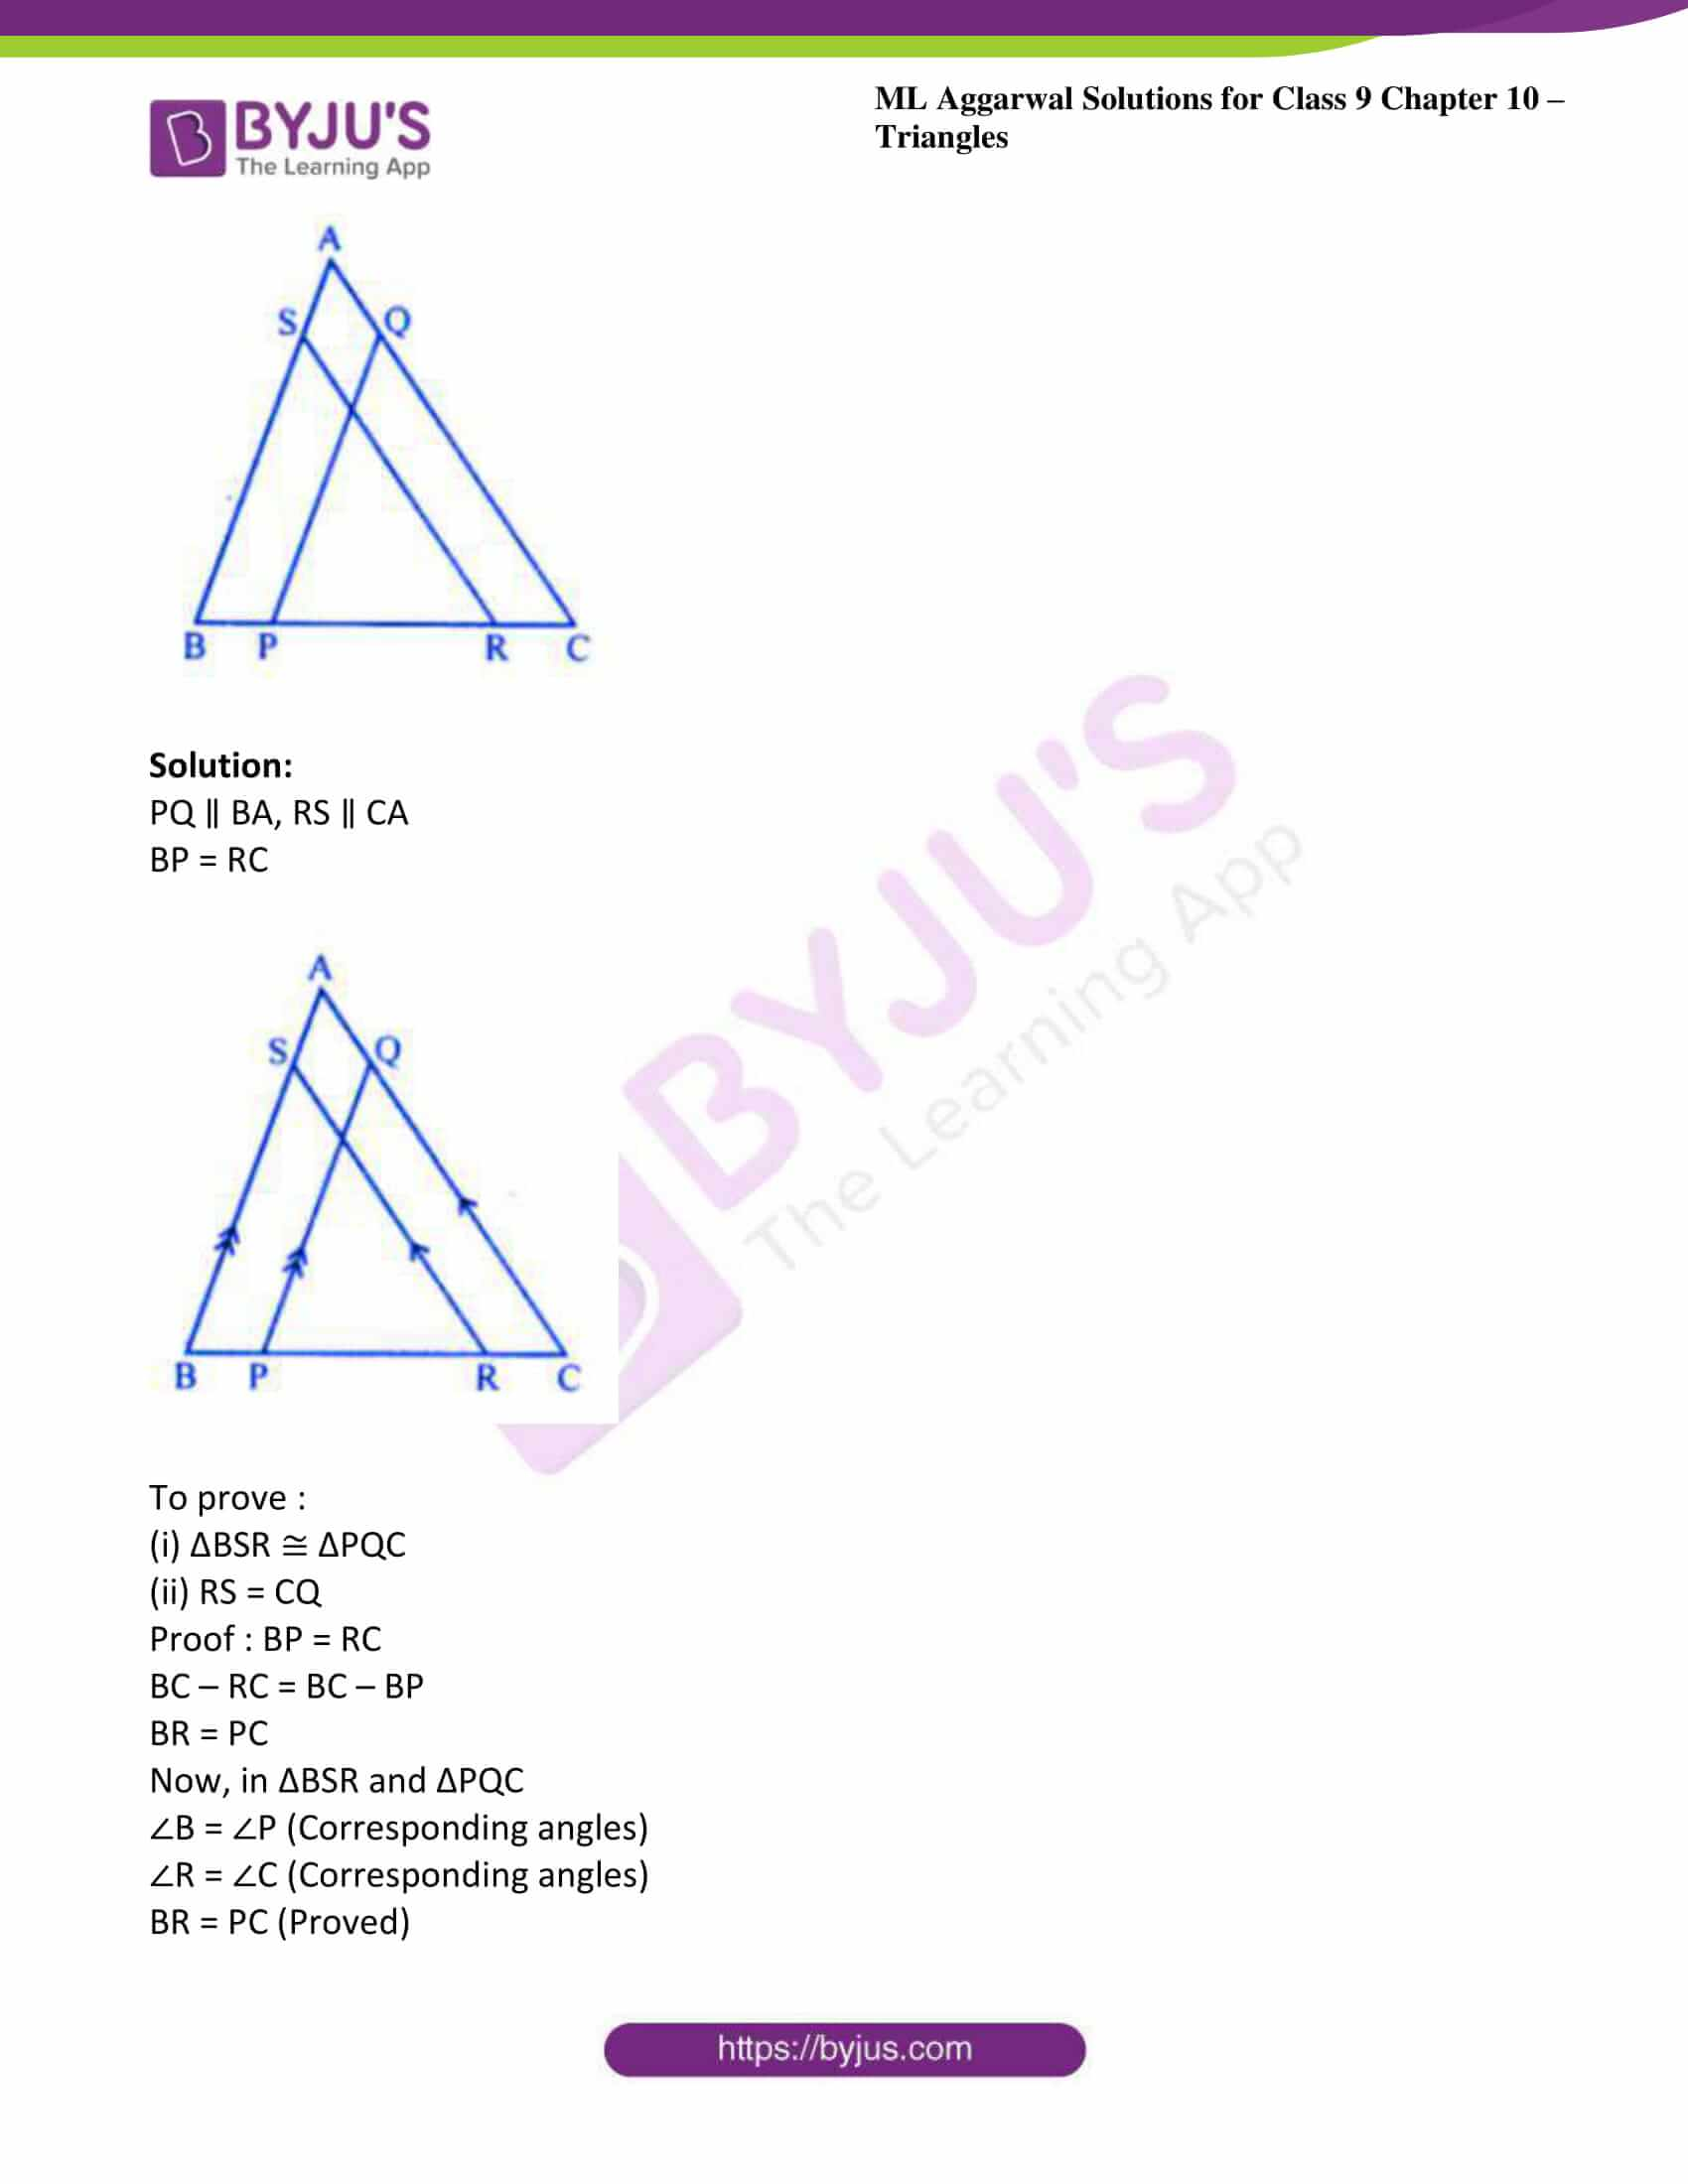 ml aggarwal solutions for class 9 maths chapter 10 31